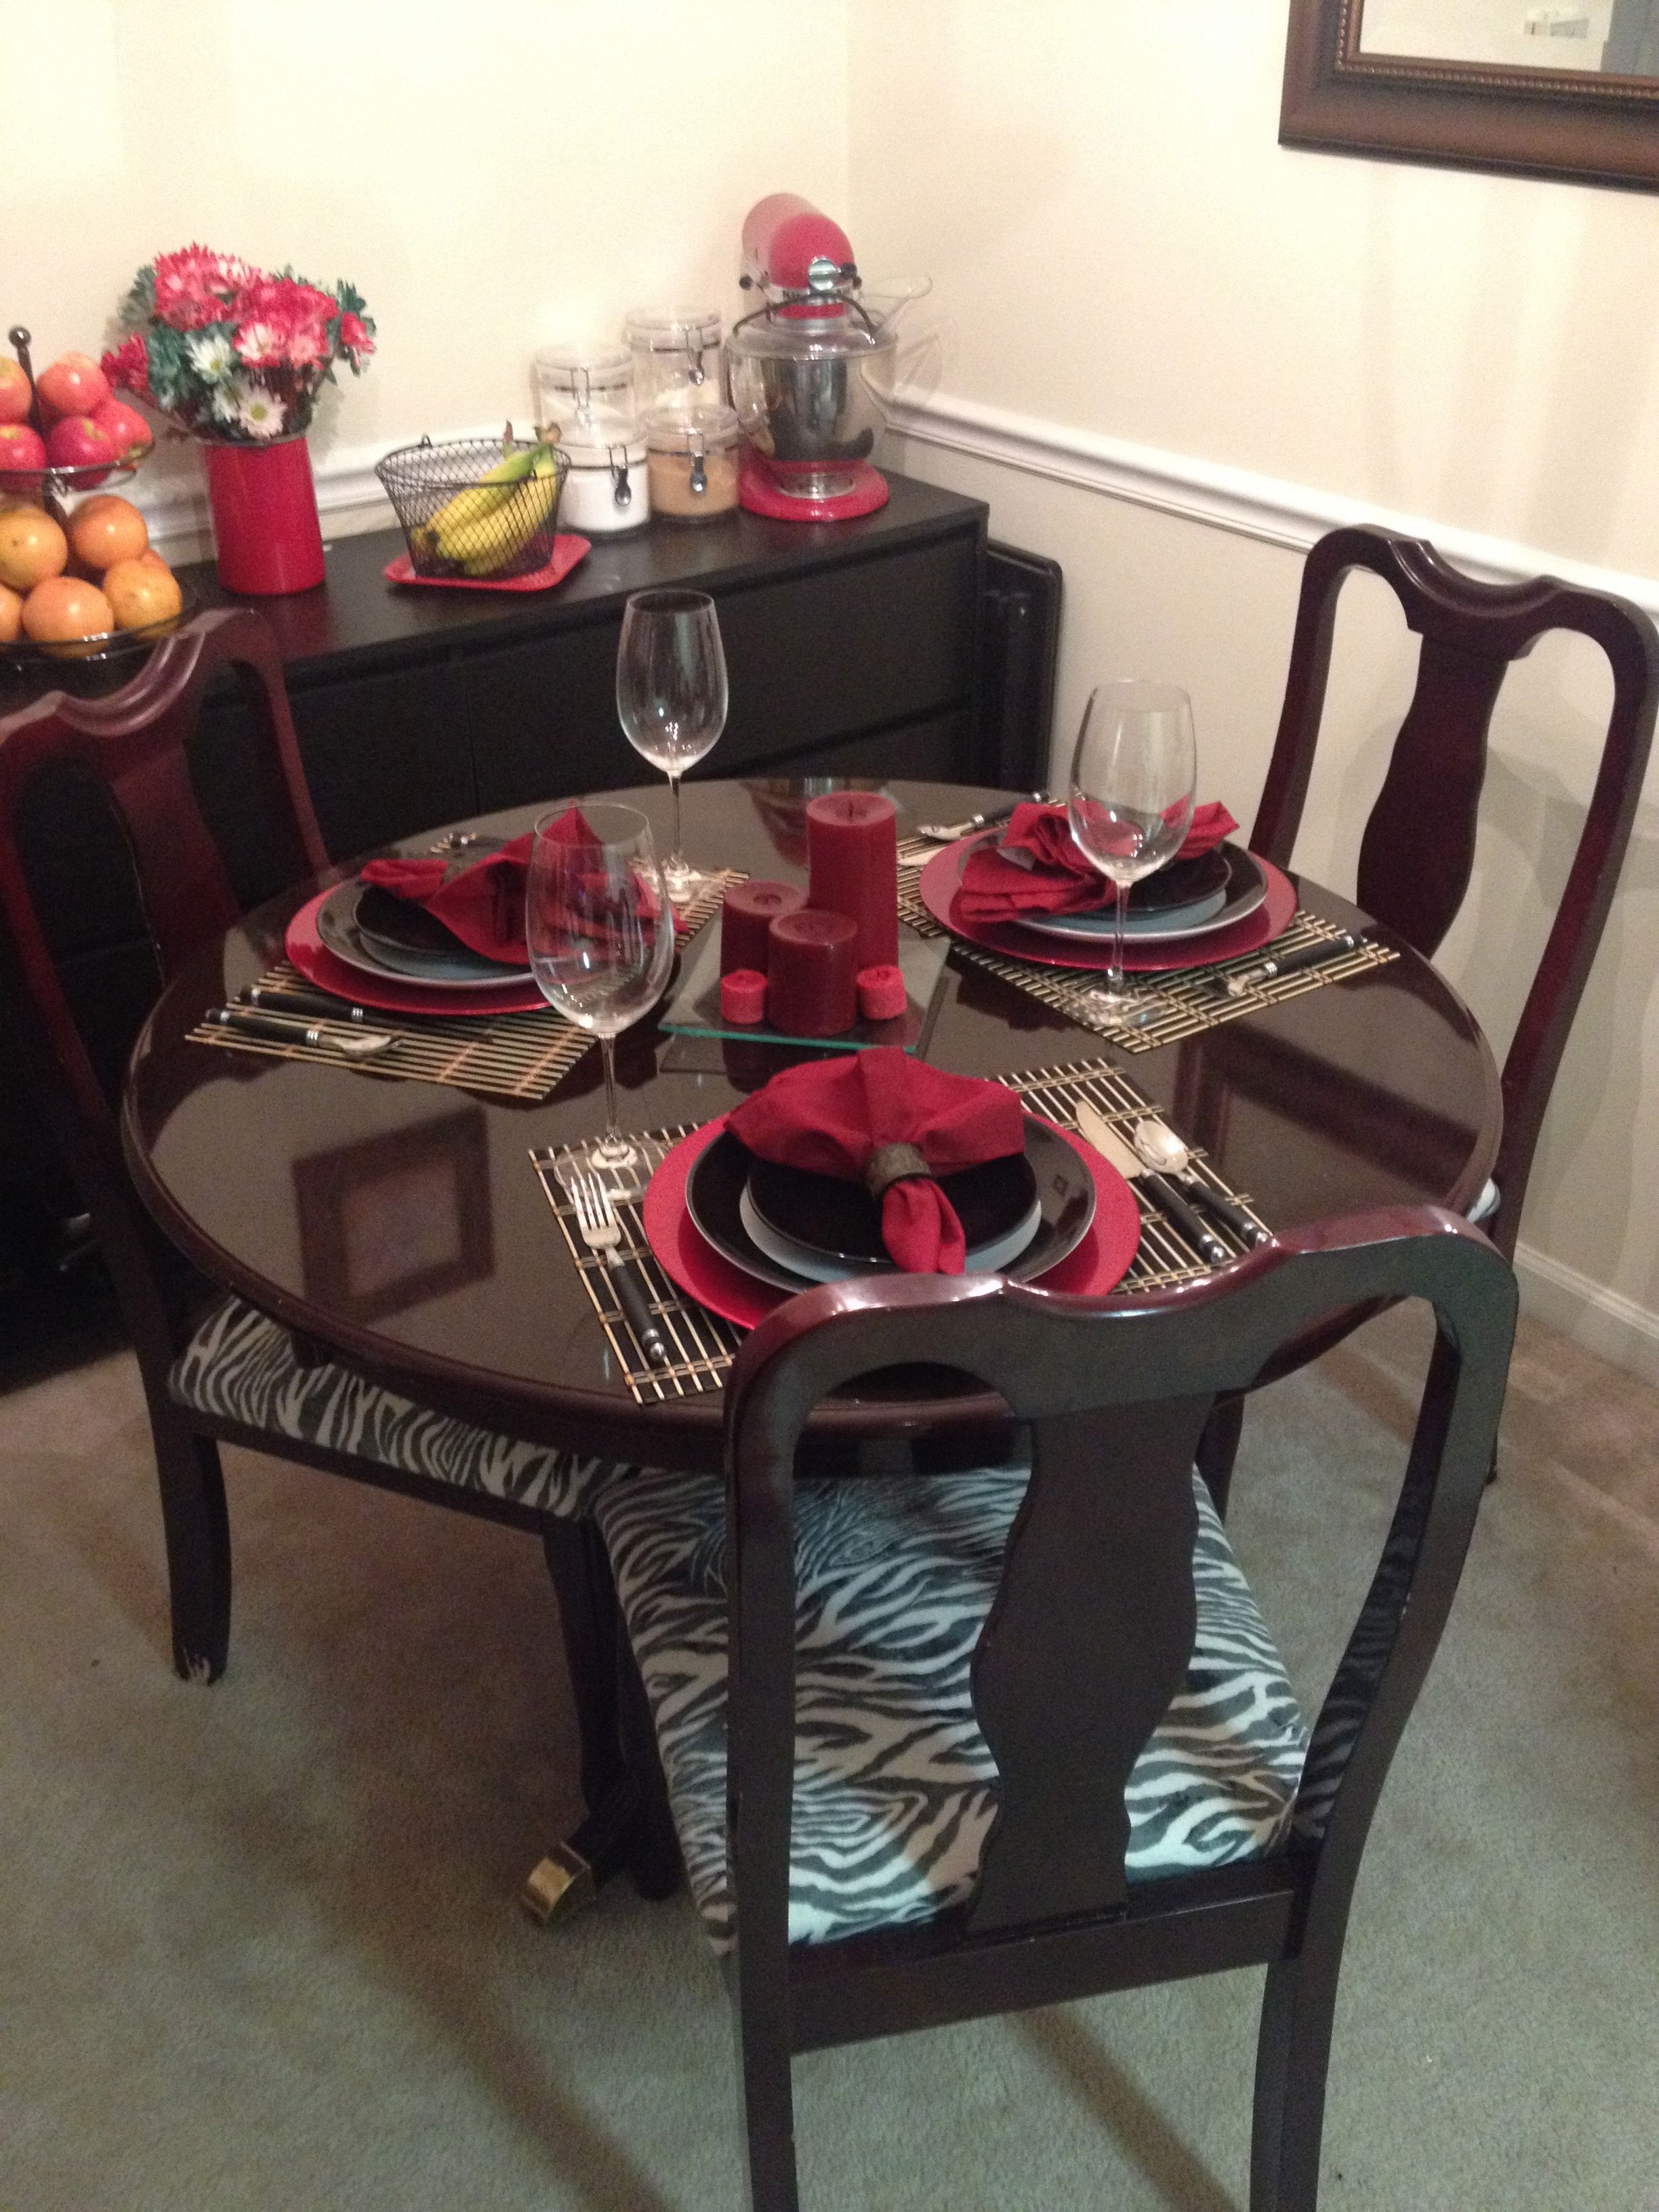 Delightful Dining Room Table Set Up With Refurbished Table And Recovered Chairs From  Craigslist!